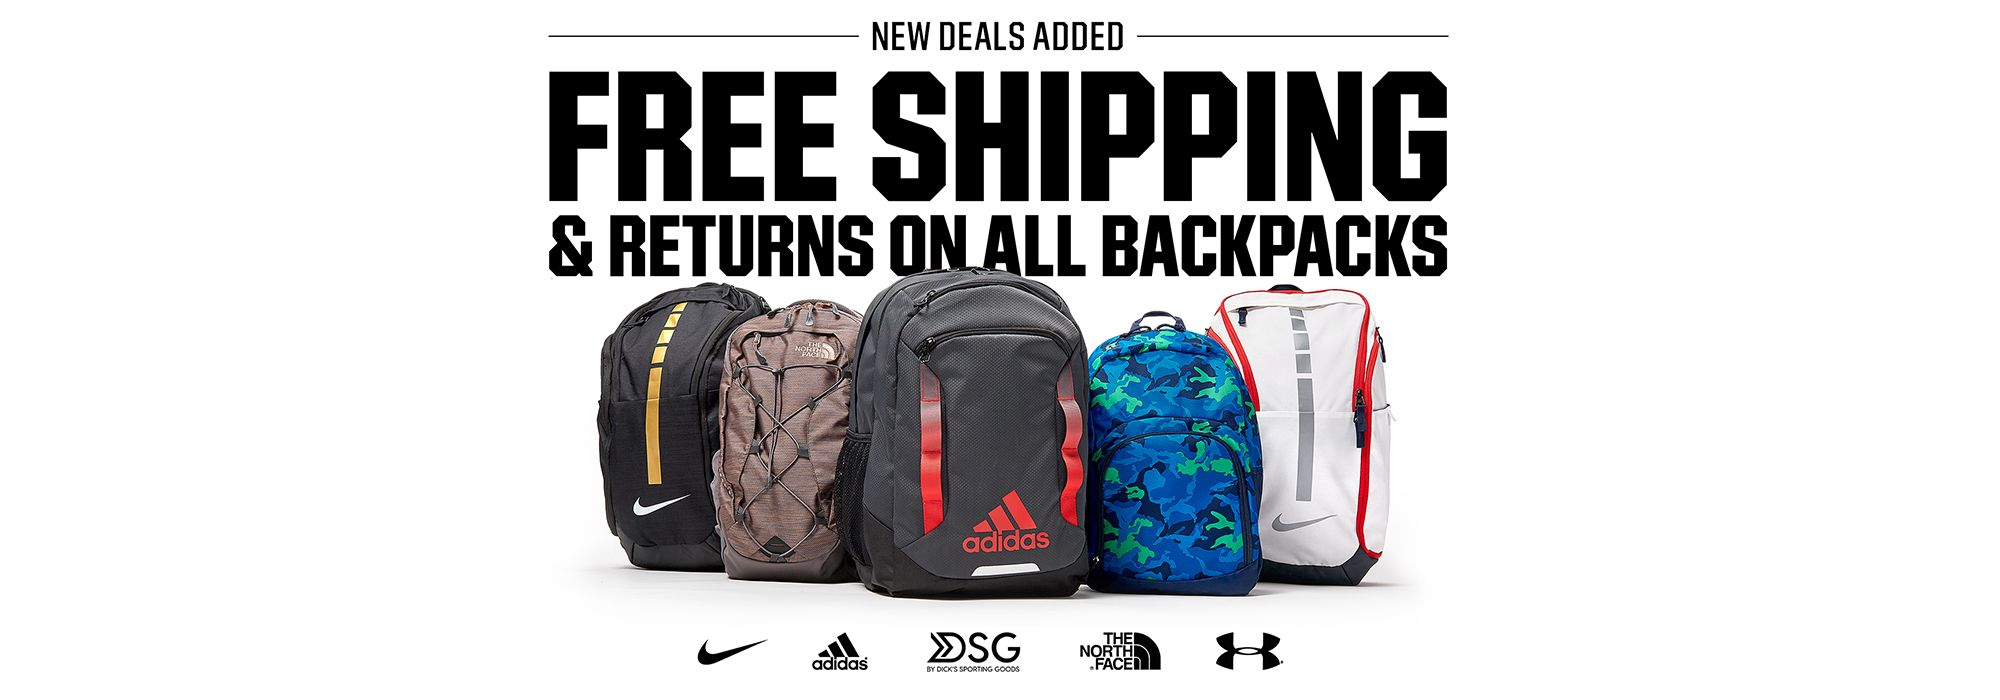 New Deals Added! Free Shipping & Returns on all Backpacks